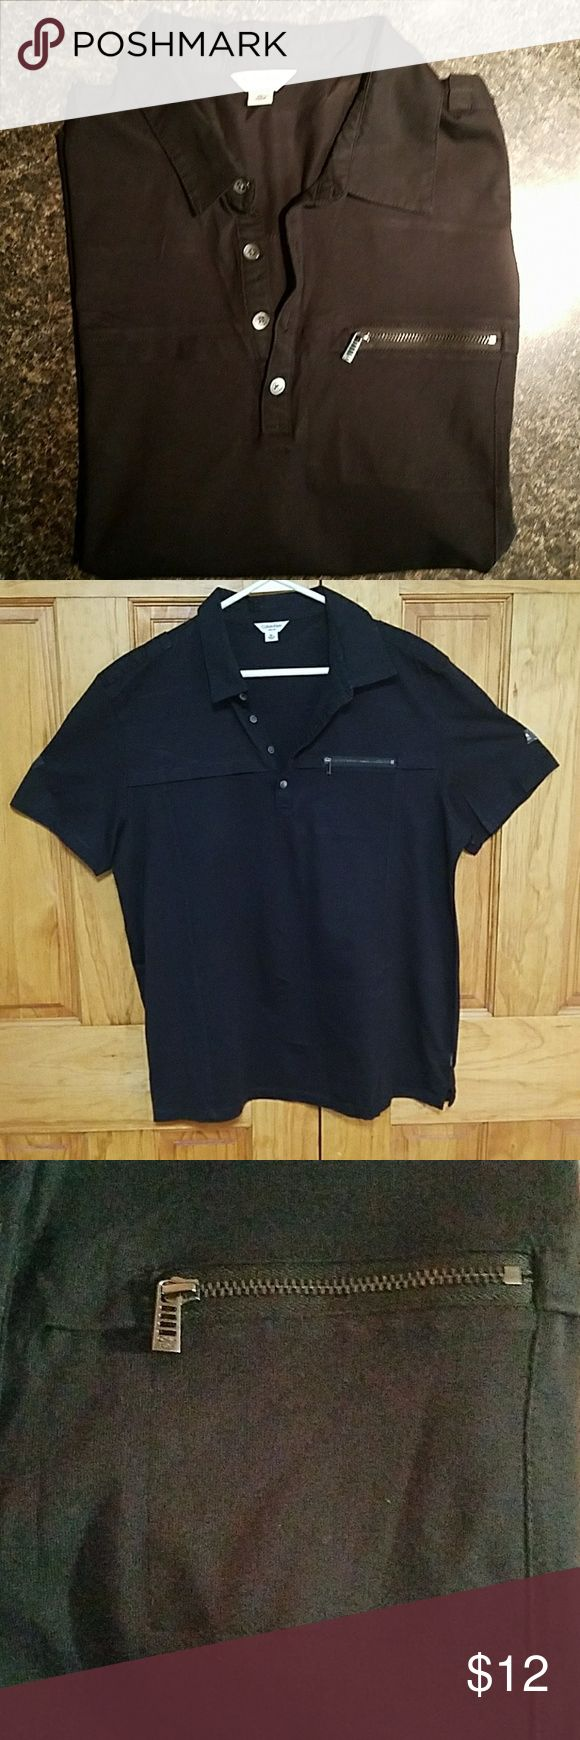 Calvin Klein Polo Great Calvin Klein shirt with a button up collar and zip pocket! Great condition, no marks or obvious wear!   Feel free to make an offer or bundle!! :) Calvin Klein Shirts Polos